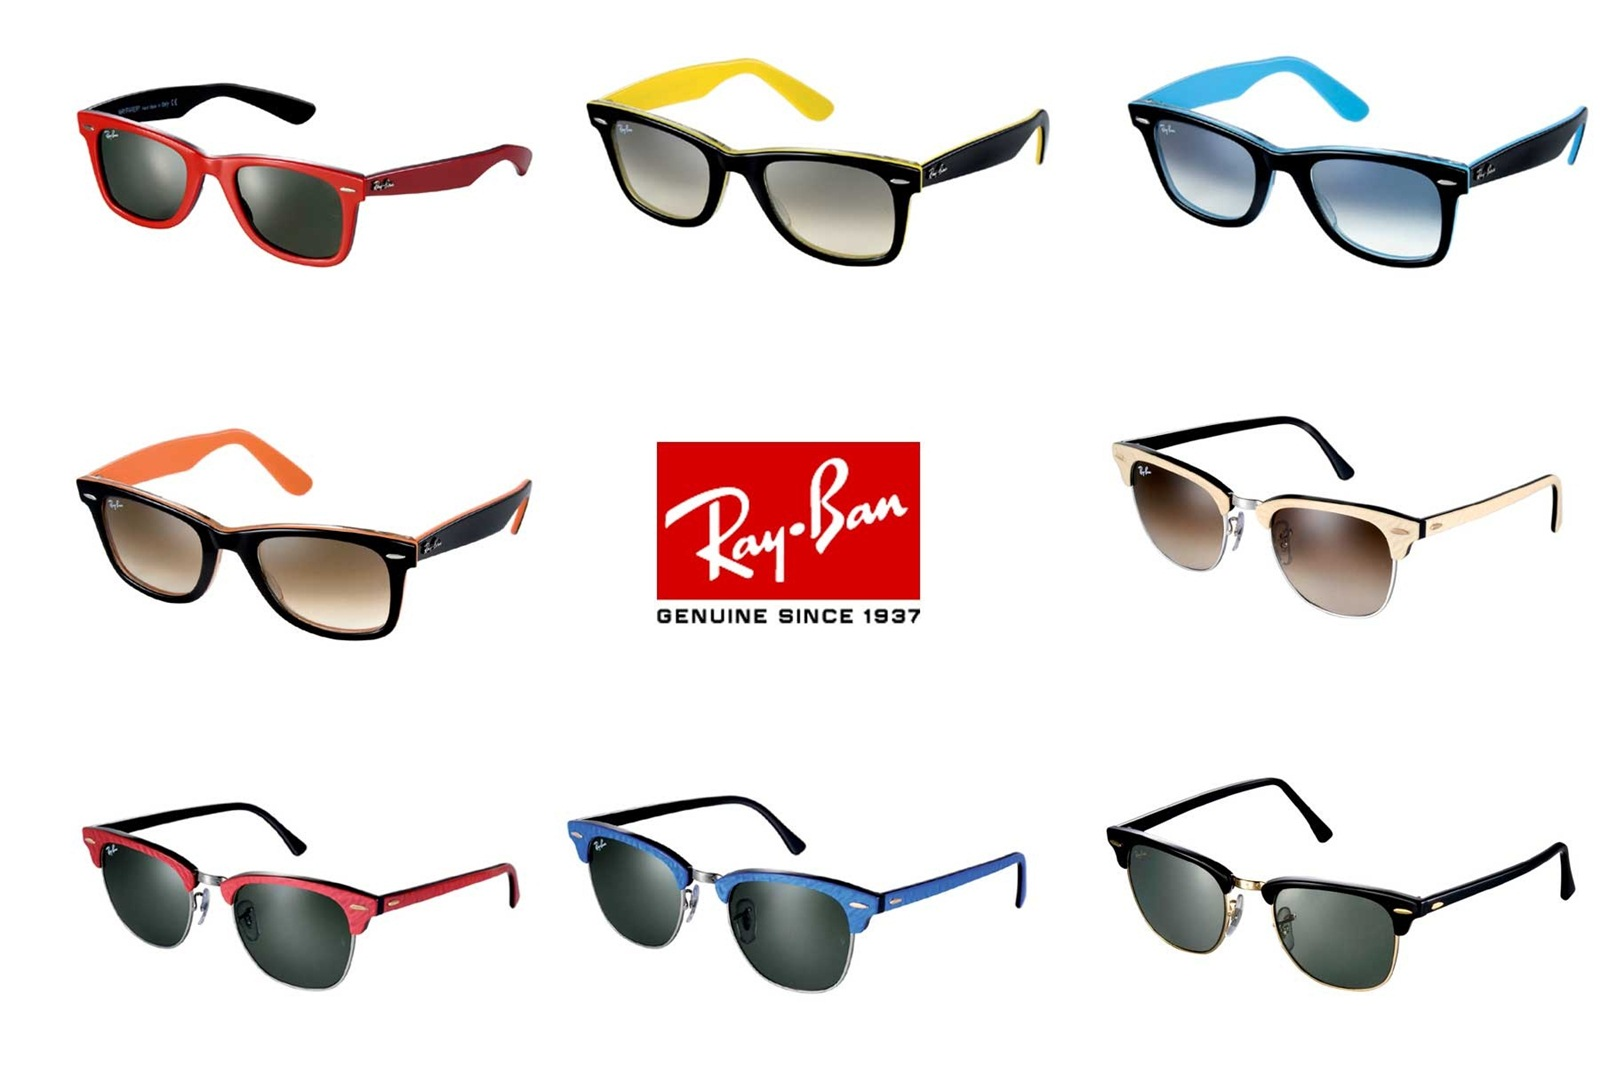 Ray Bans For Kids Eyeglasses Images Background Wallpaper Heritage